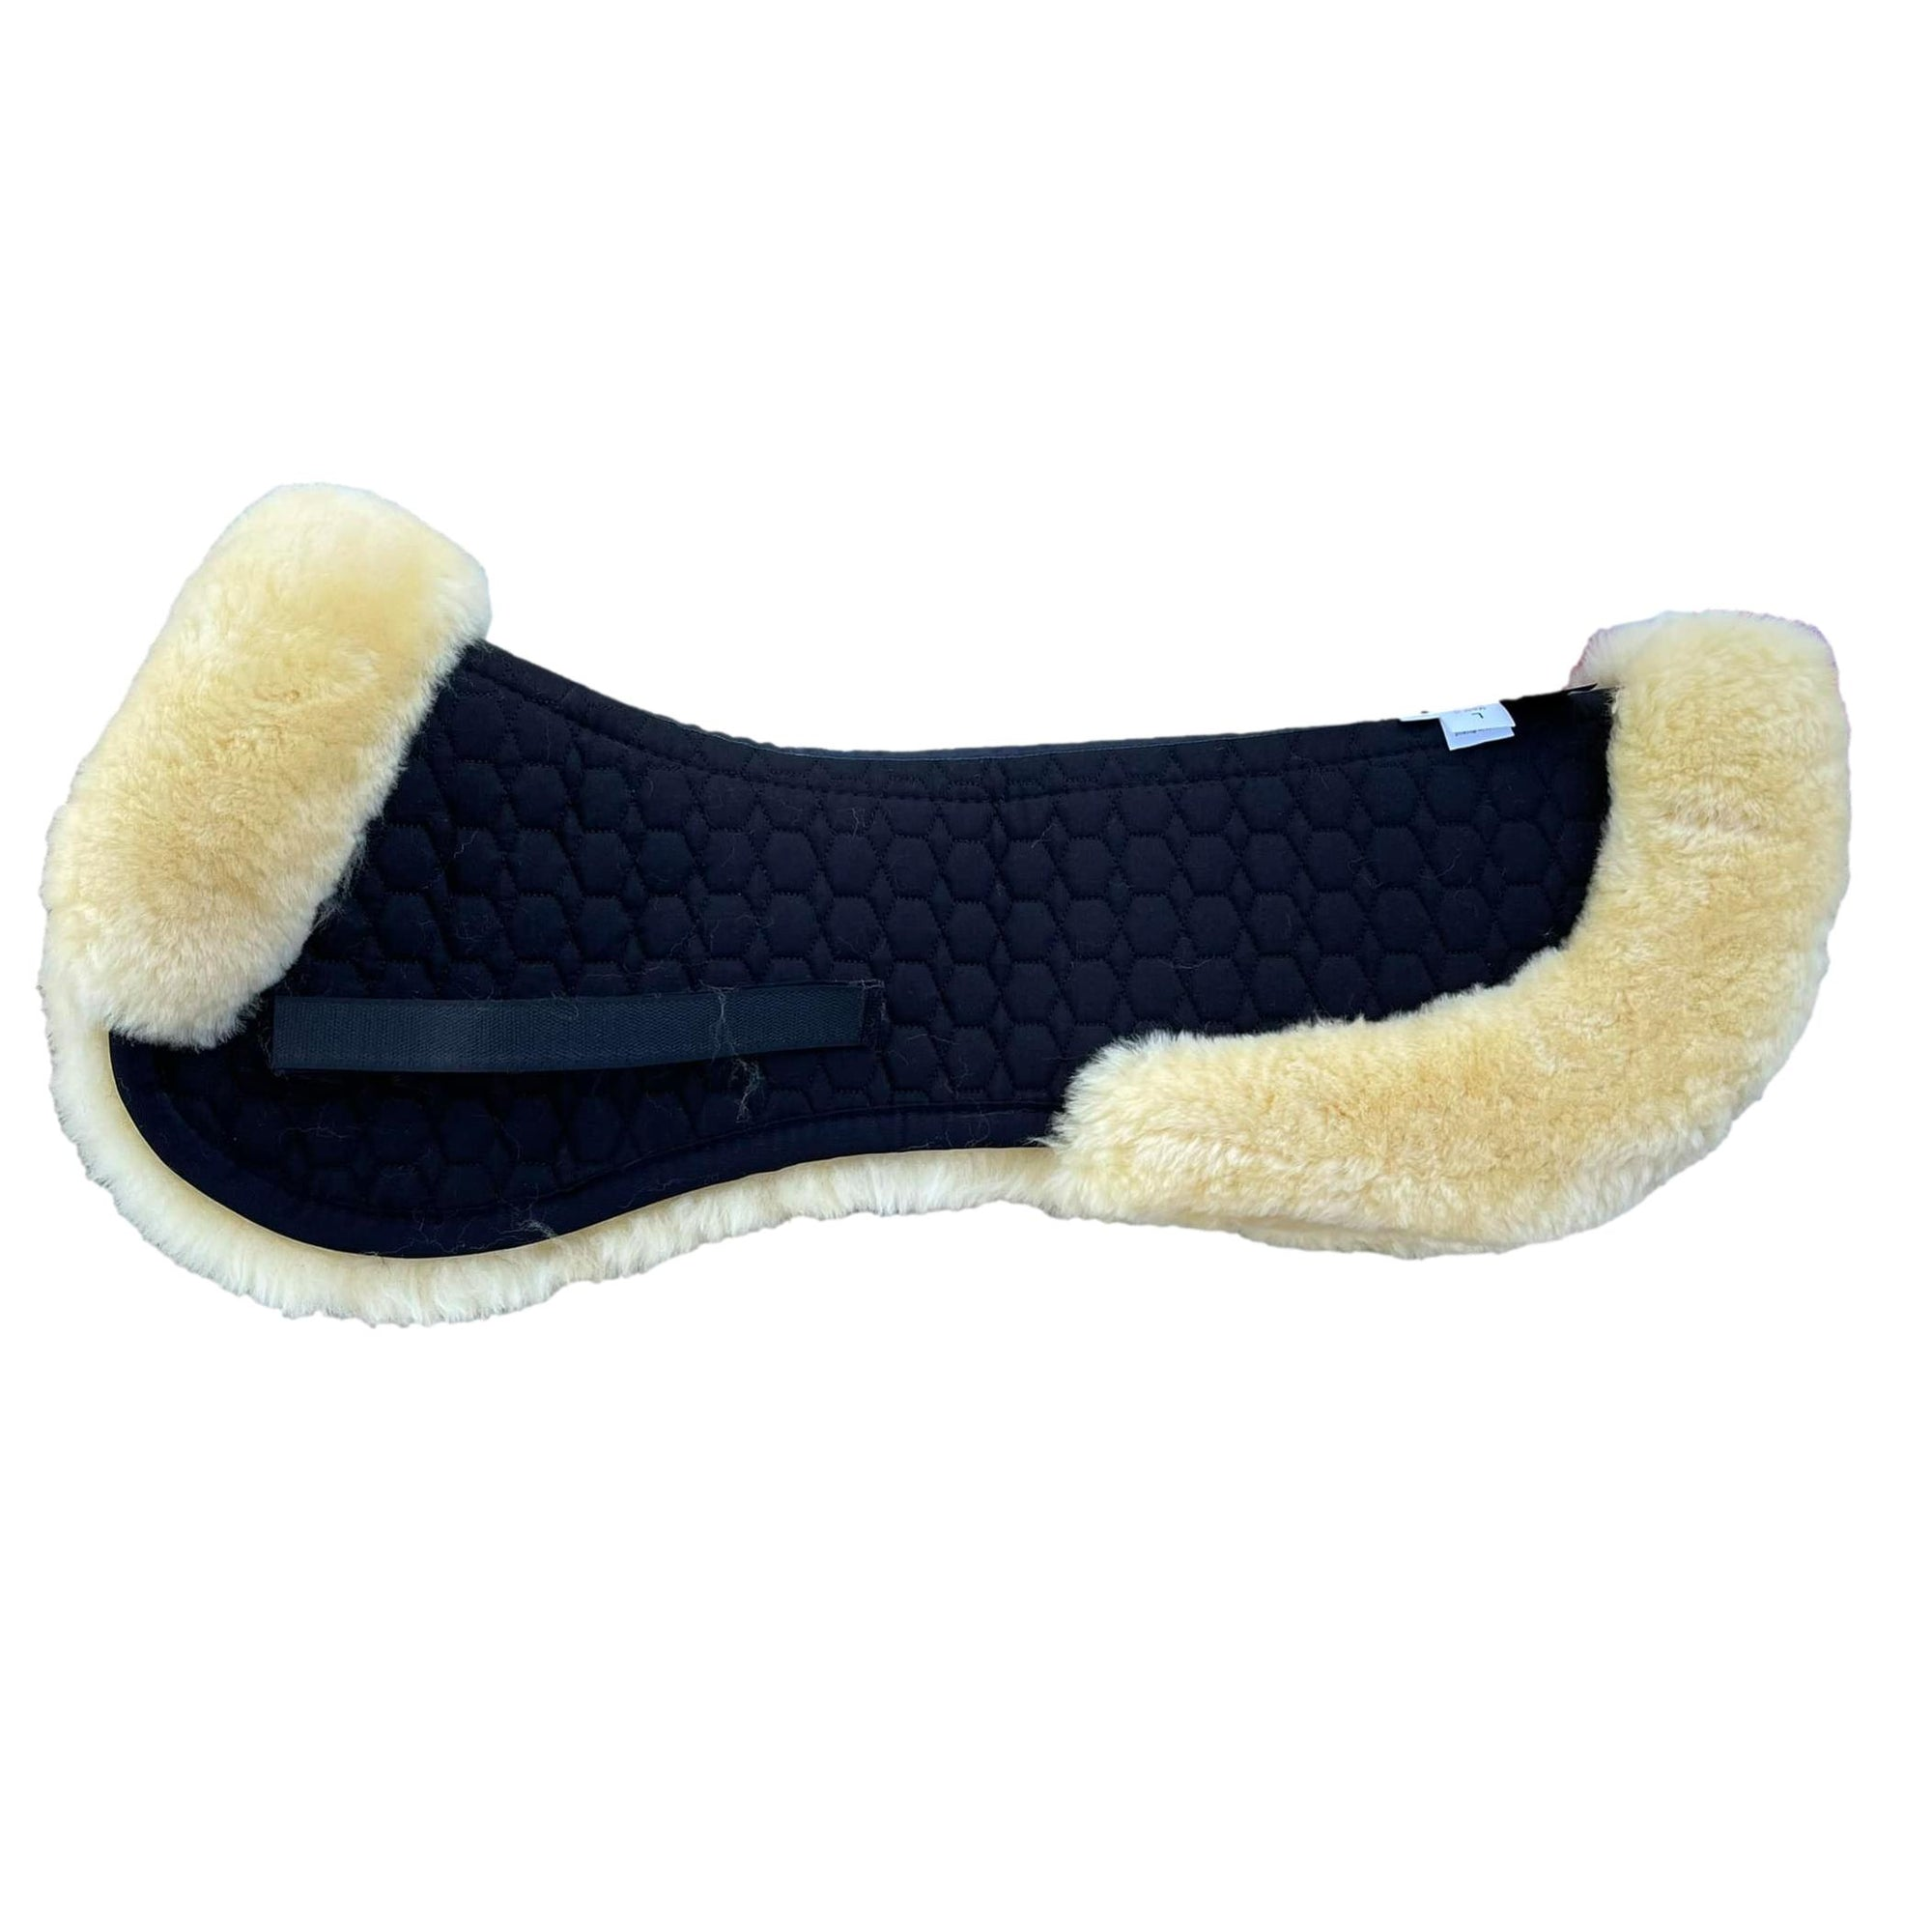 E.A Mattes Core Range Half pad - Full Sheepskin  (Assorted Colours/Sizes)